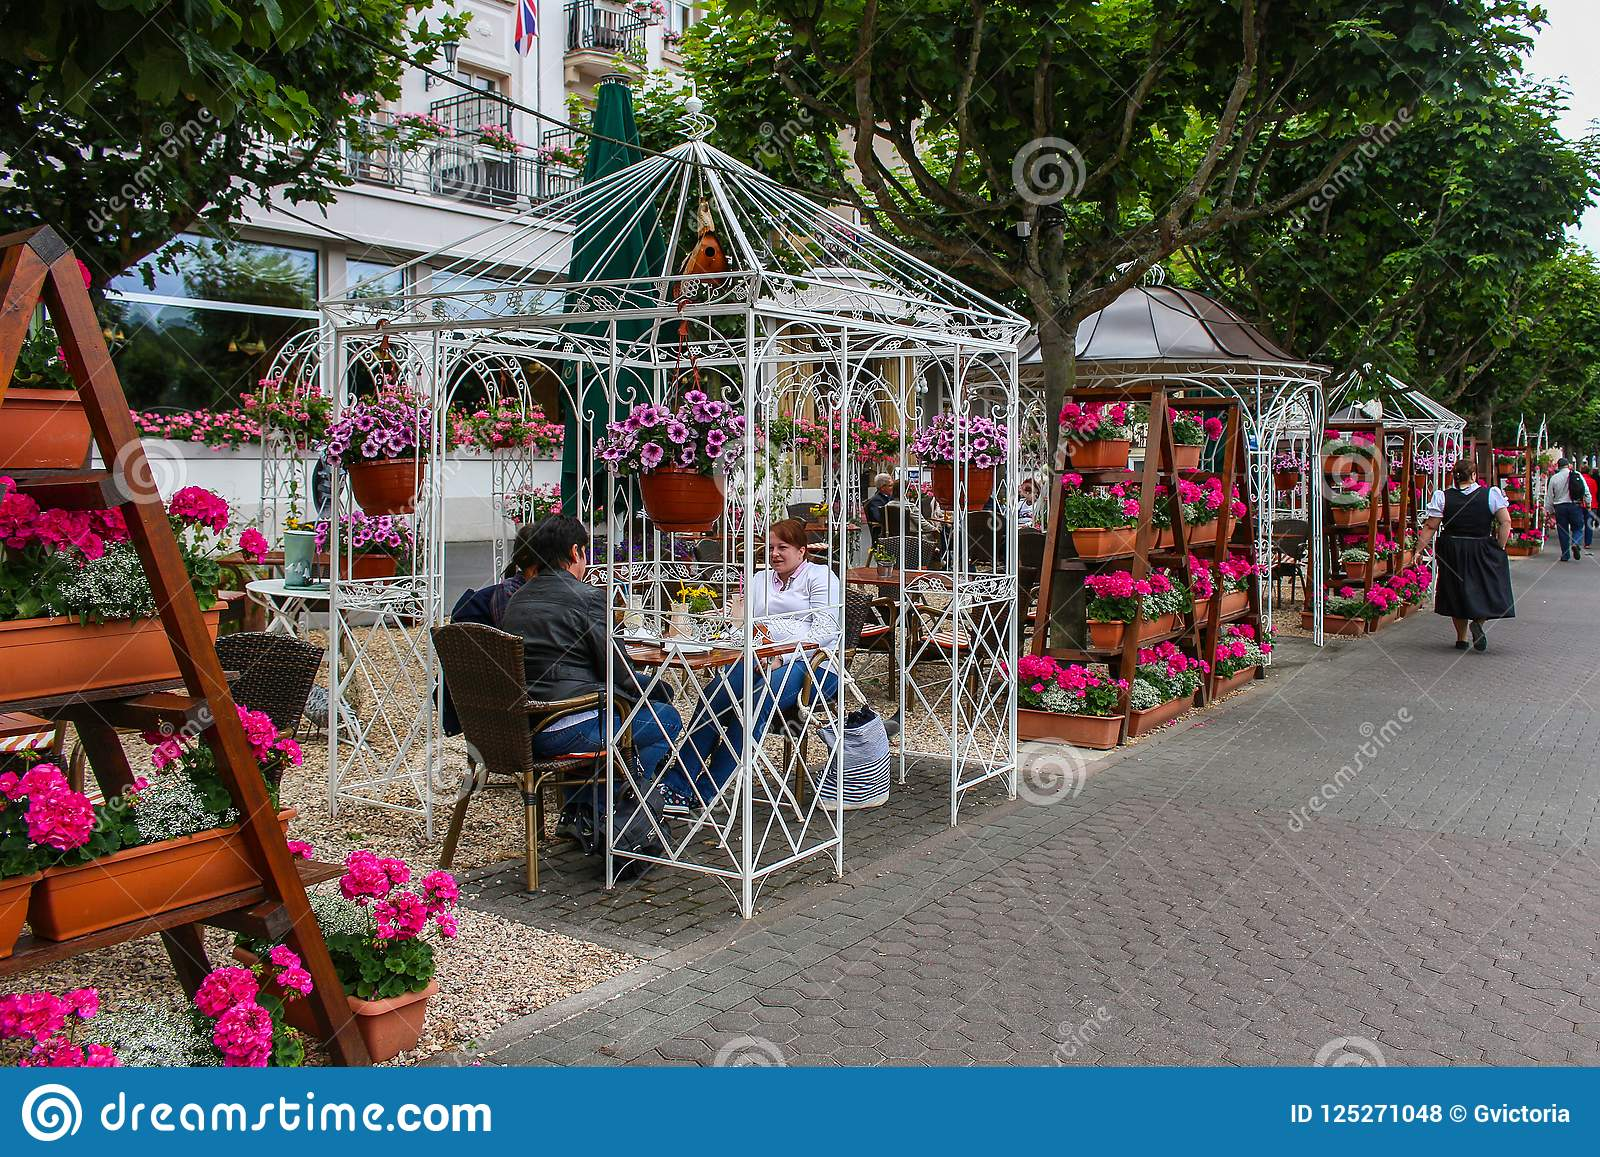 Outdoor Restaurant And Cafe Under Gazebos In Boppard Germany Editorial Stock Photo Image Of Ornate Happy 125271048